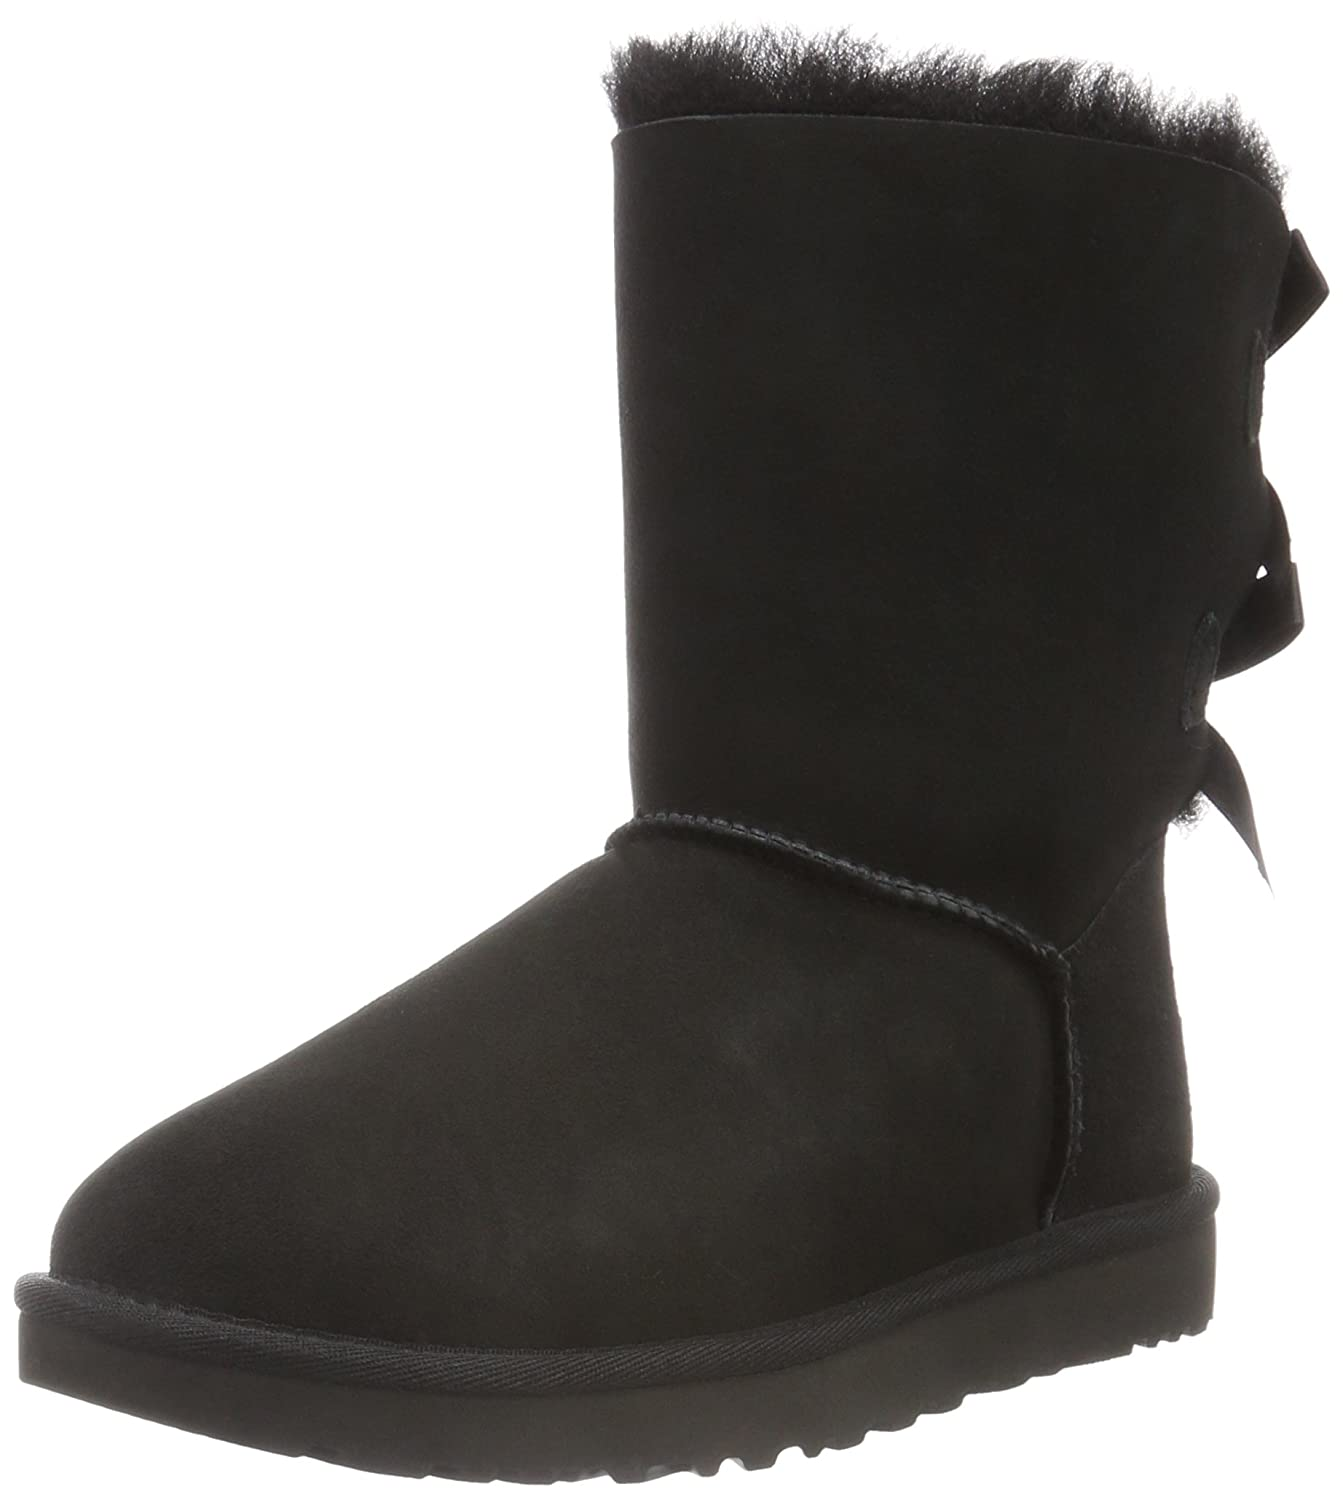 4879a2ae454 UGG Women's Bailey Bow II Winter Boot